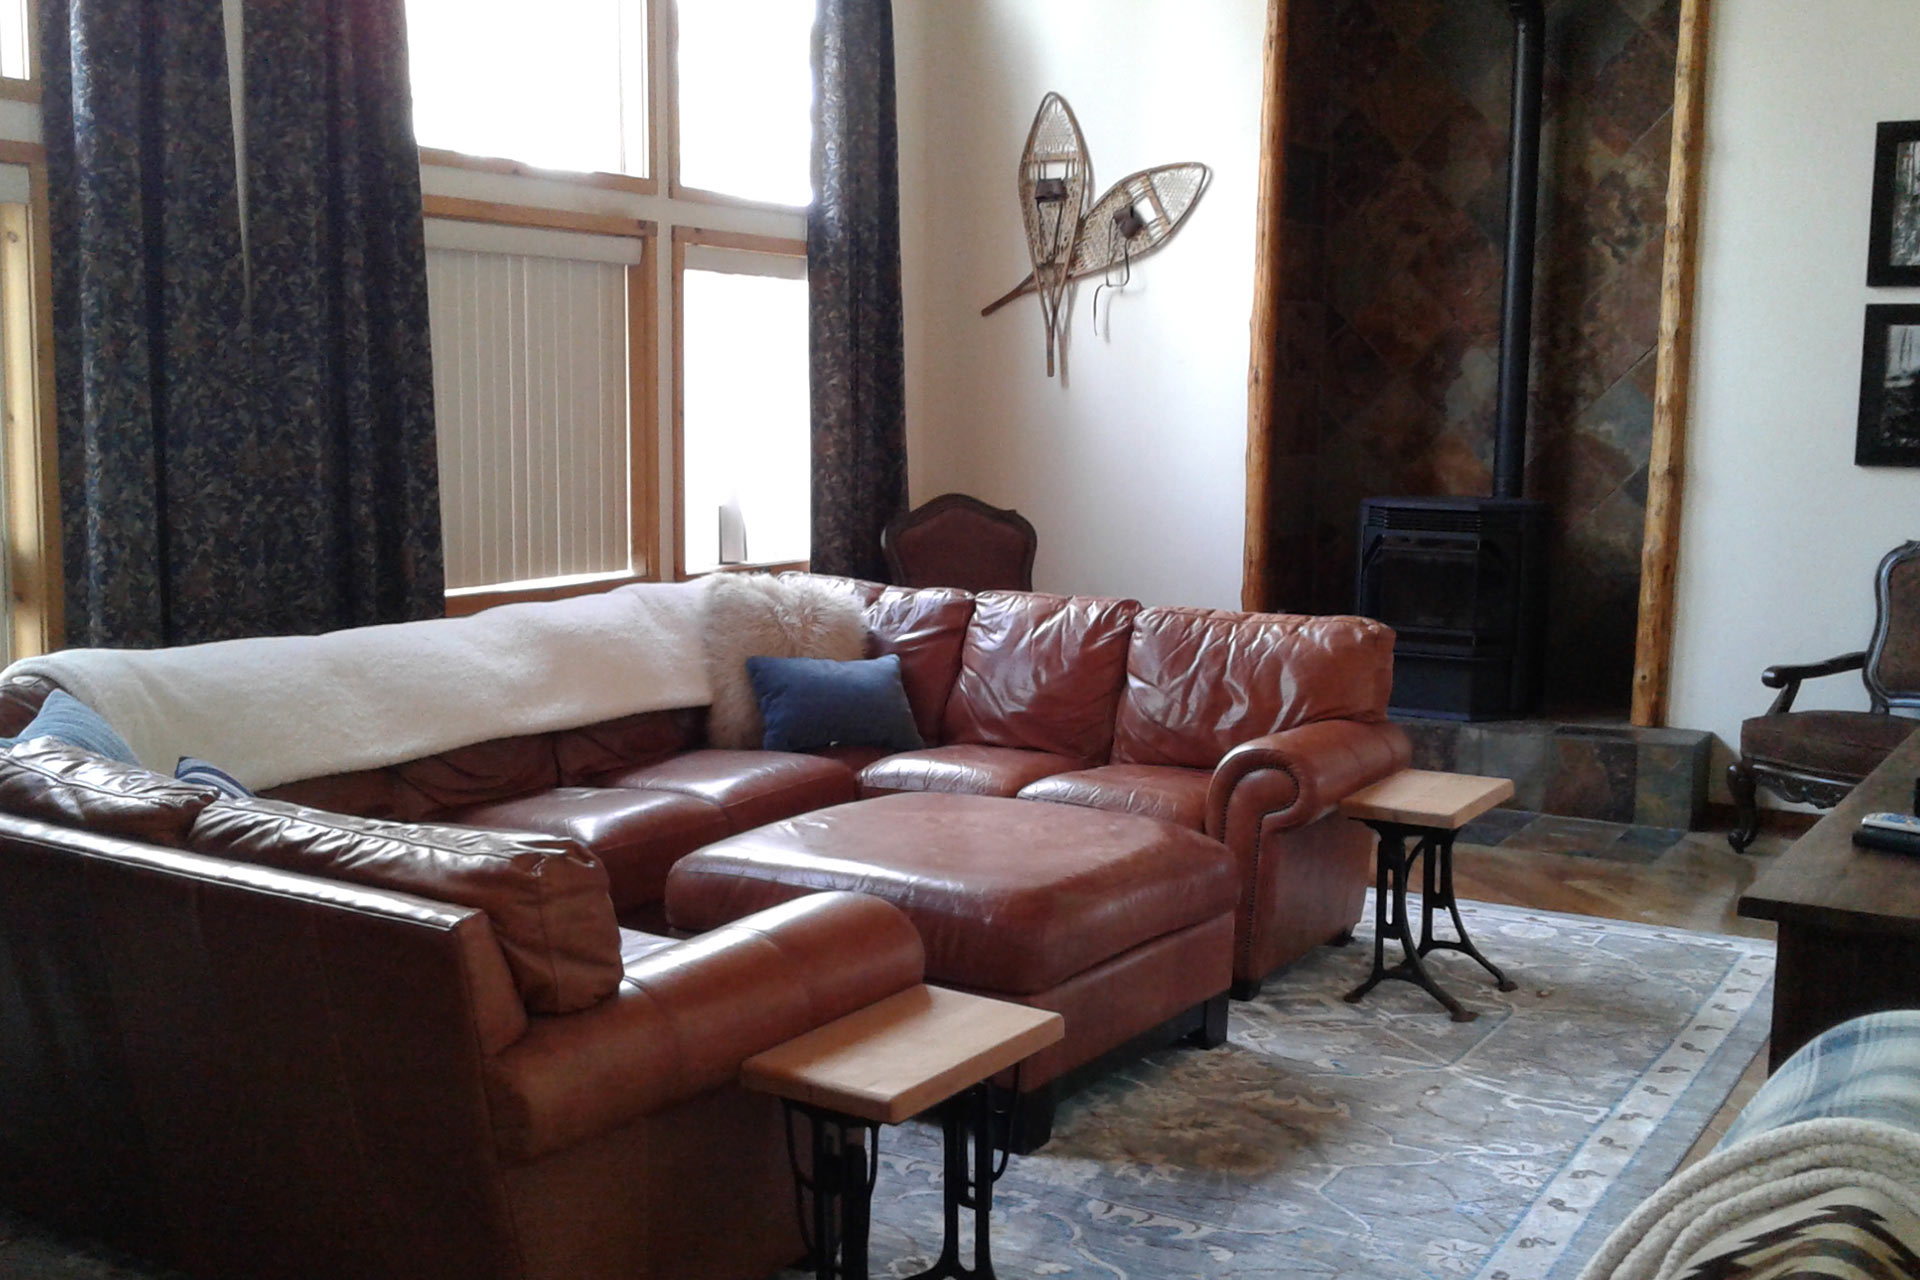 Seating area in the residence